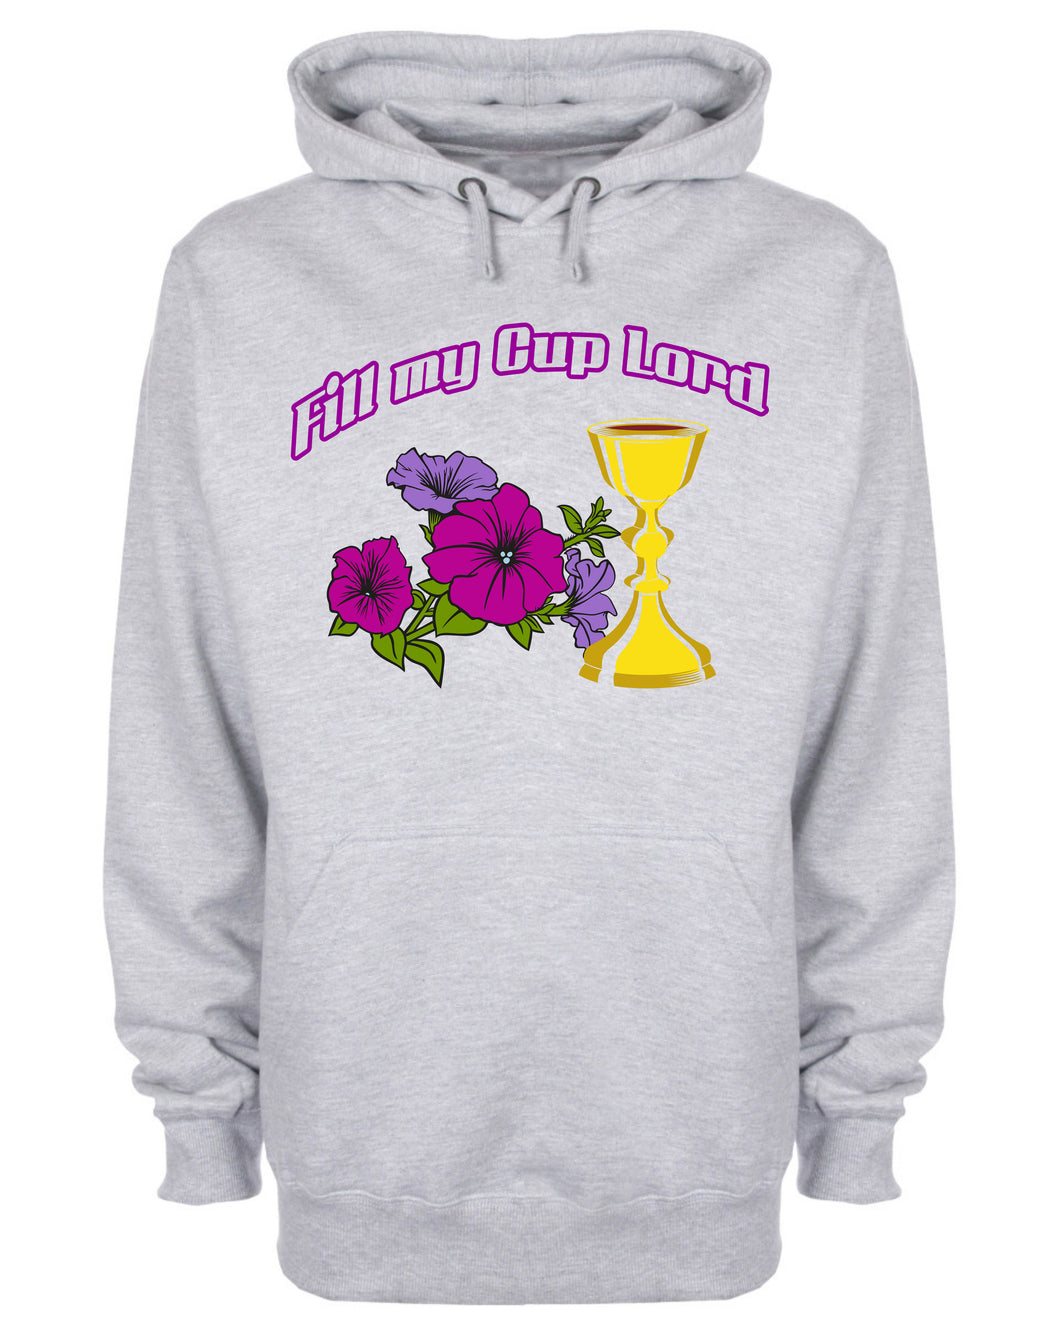 Fill My Cup Lord Hoodie Christian Sweatshirt